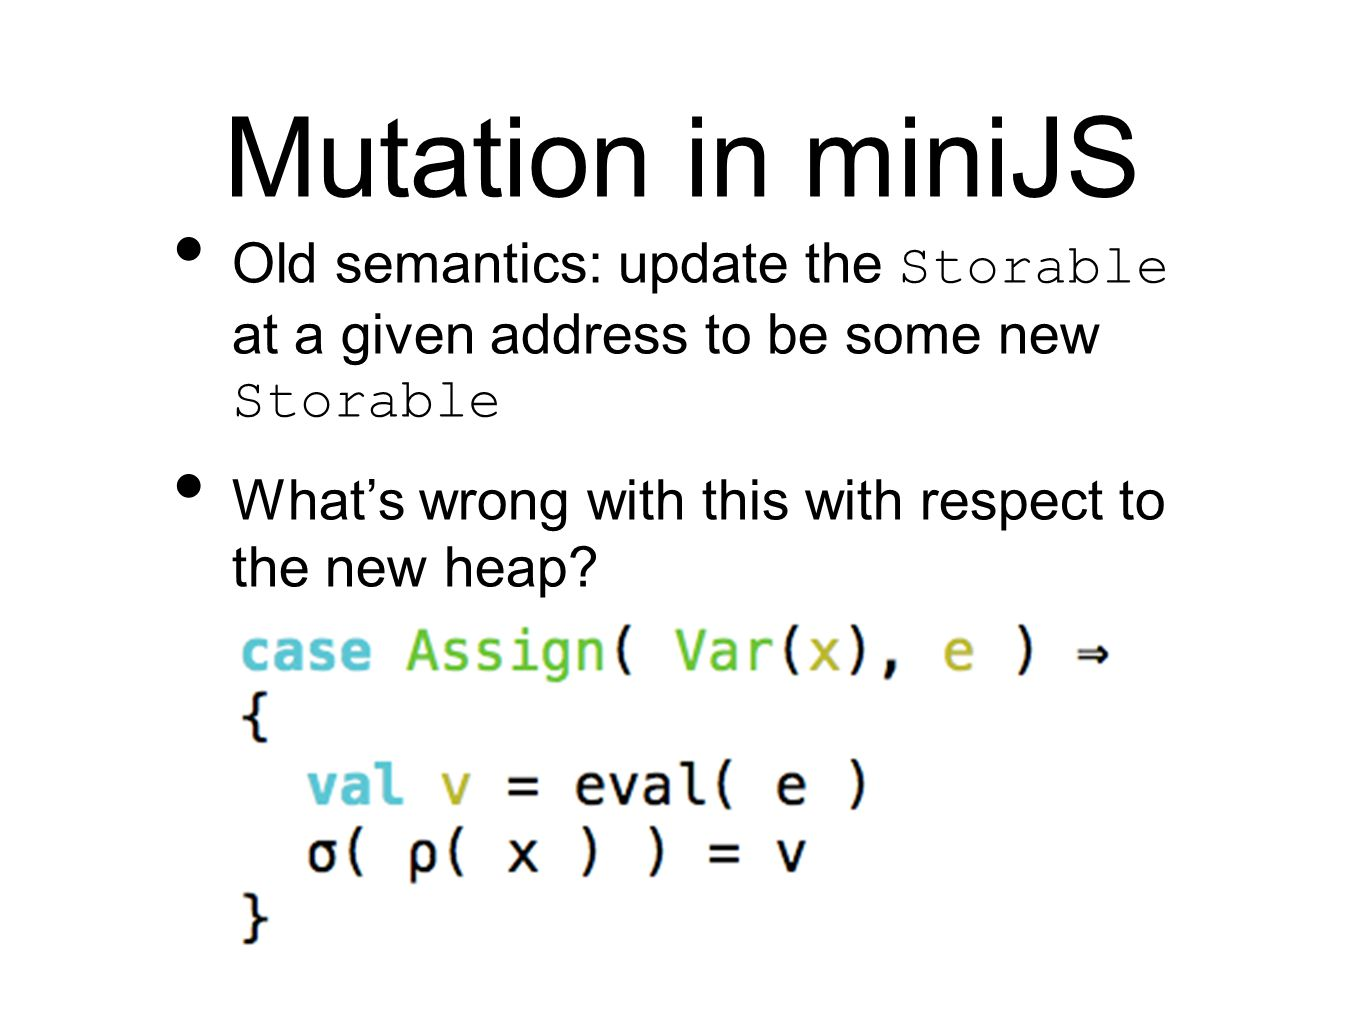 Mutation in miniJS Old semantics: update the Storable at a given address to be some new Storable What's wrong with this with respect to the new heap